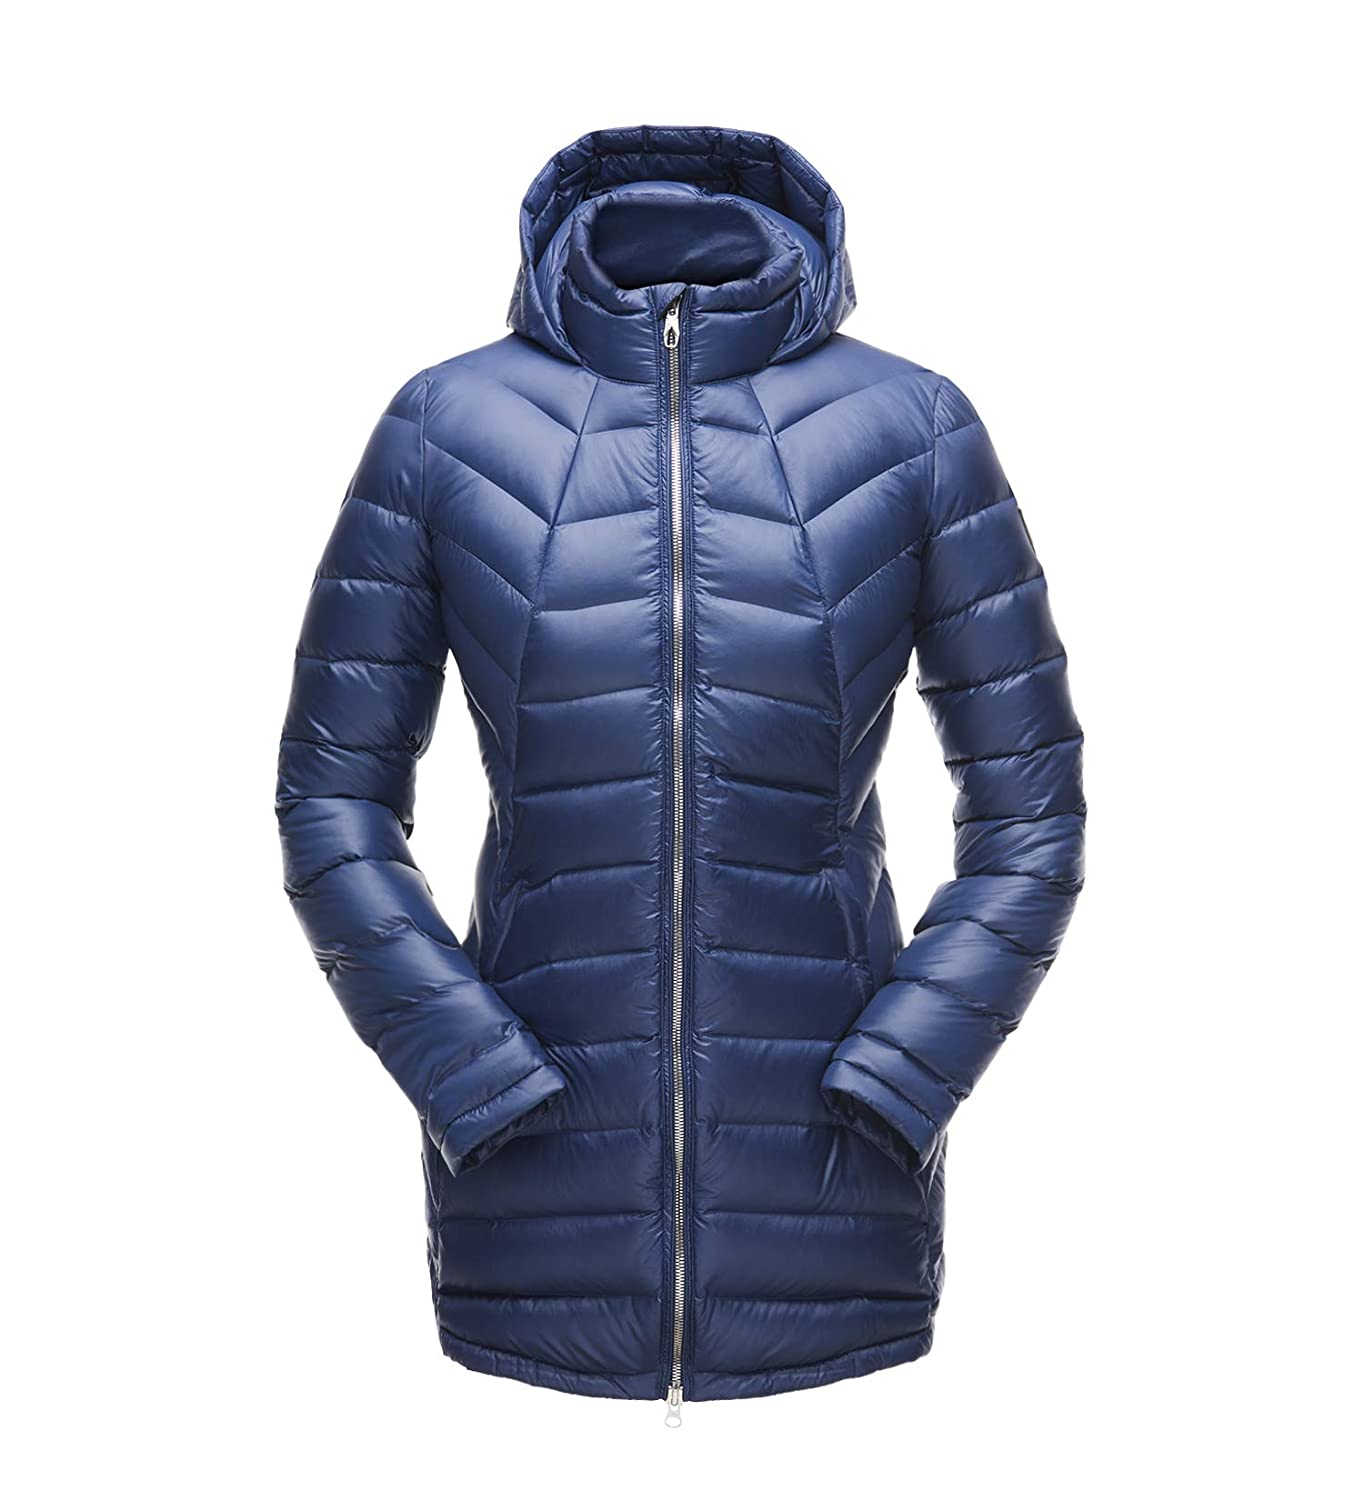 bluee Depths bluee Depths Spyder Women's Syrround Long Down Jacket